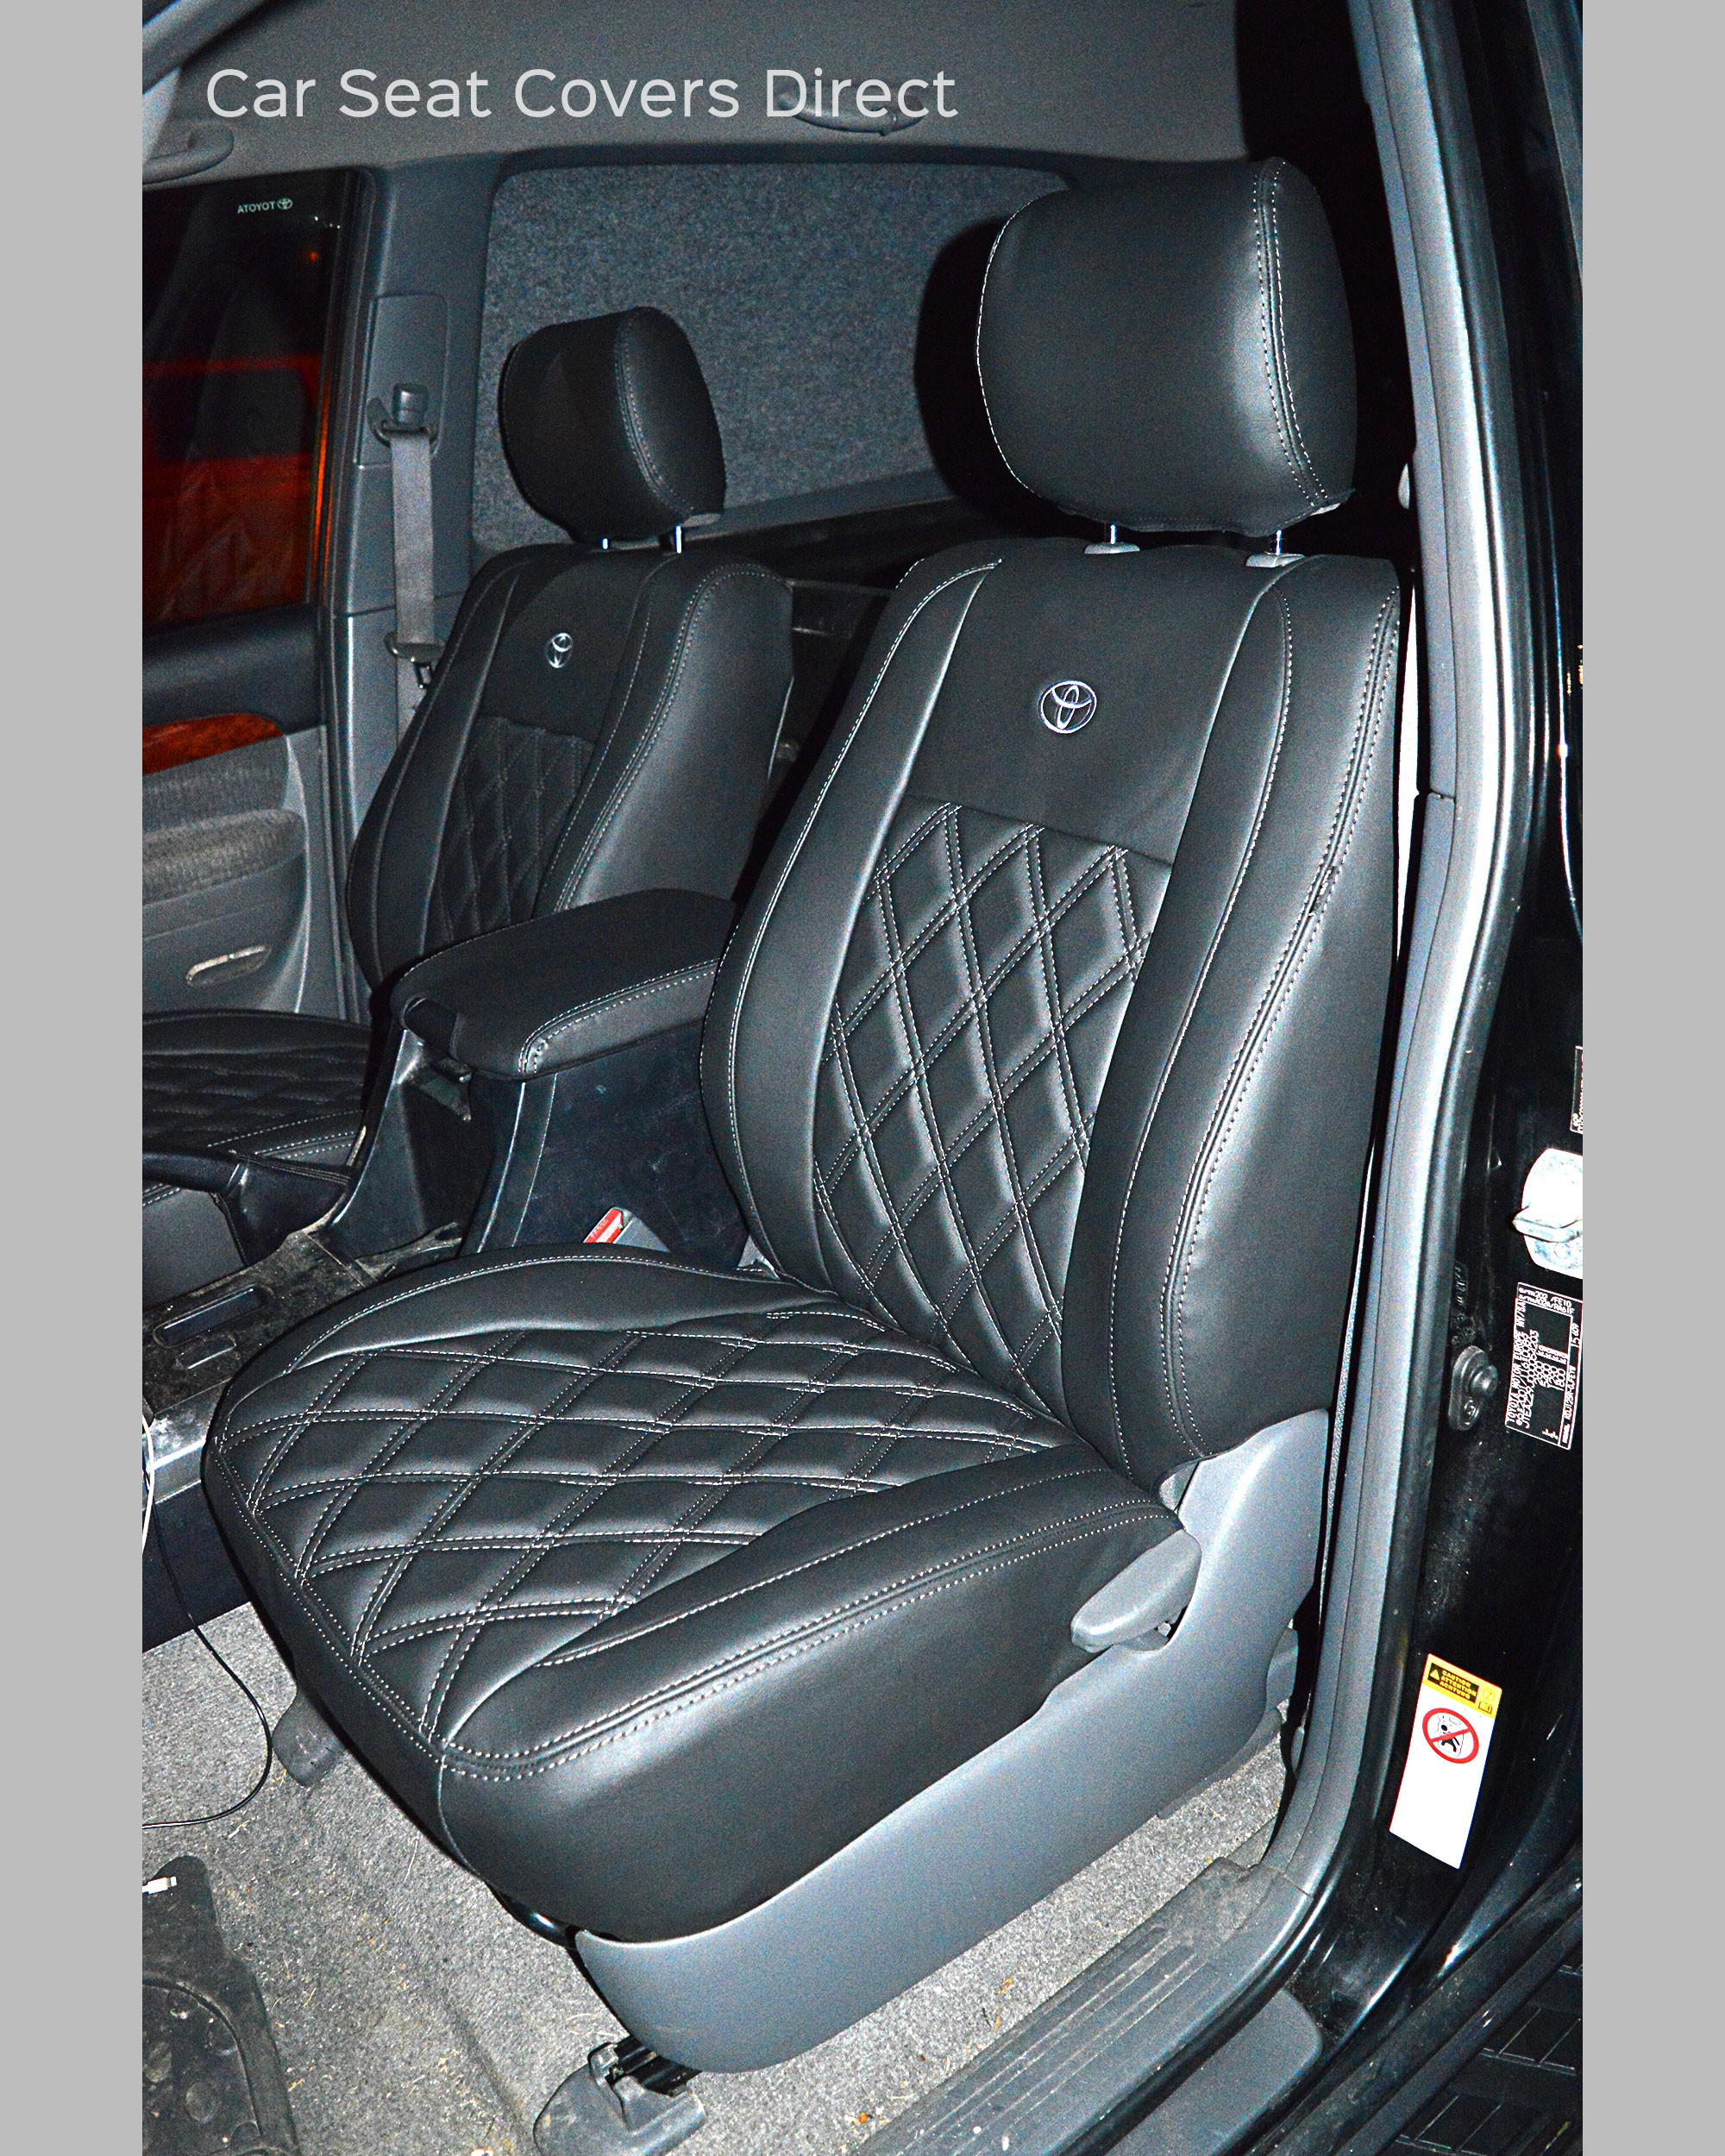 Toyota Land Cruiser Seat Covers - Passenger Seat